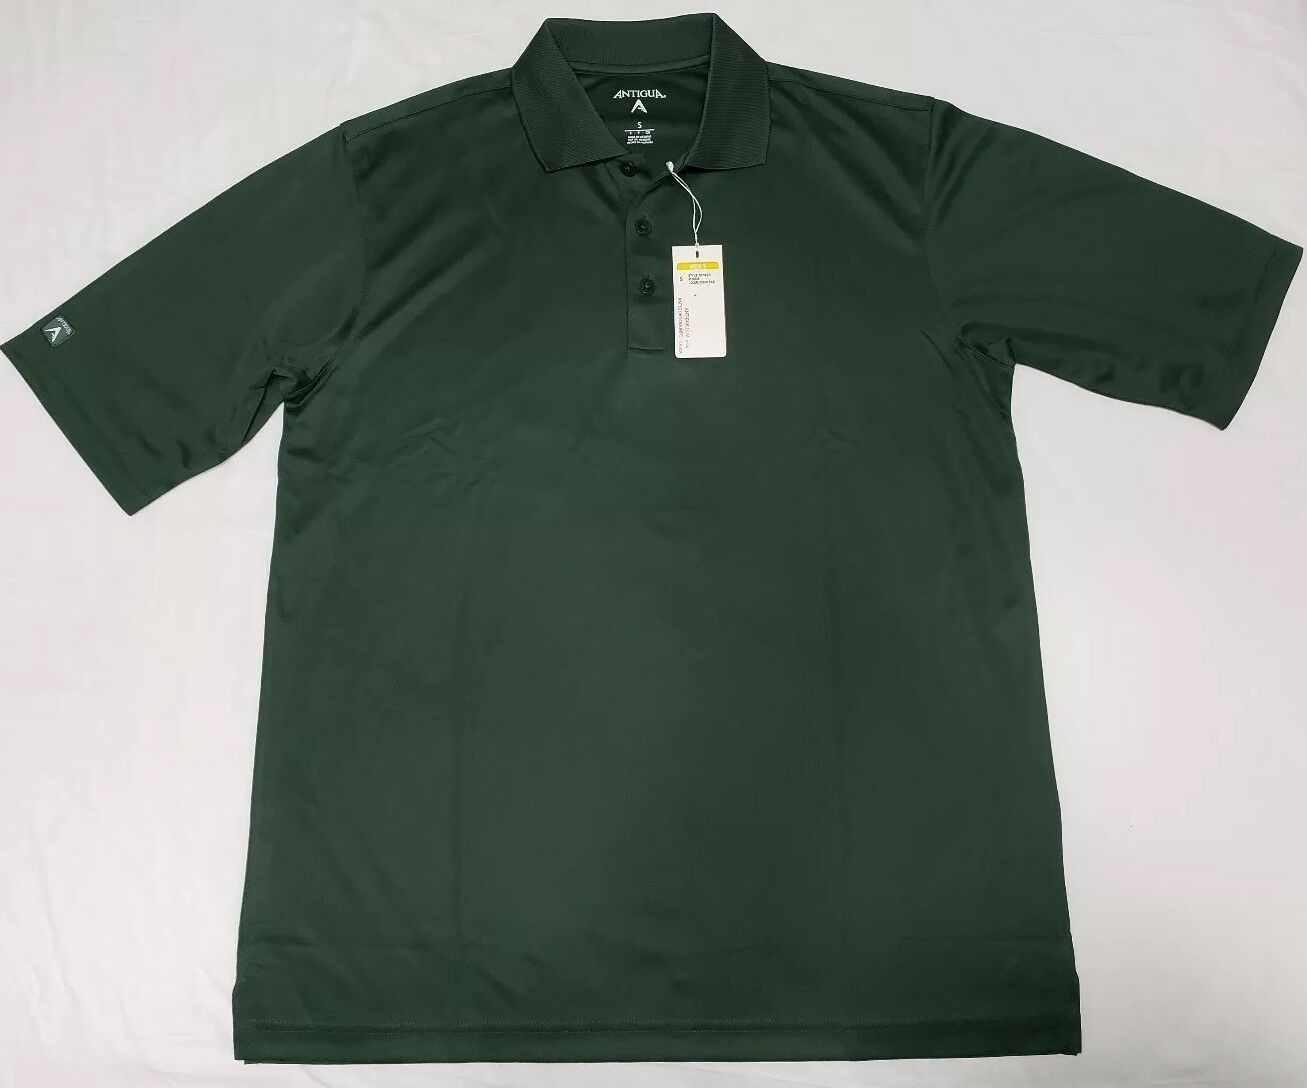 NEW ANTIGUA Exceed Dark Pine Green Desert Dry Mens Golf Polo Shirt Size S Small